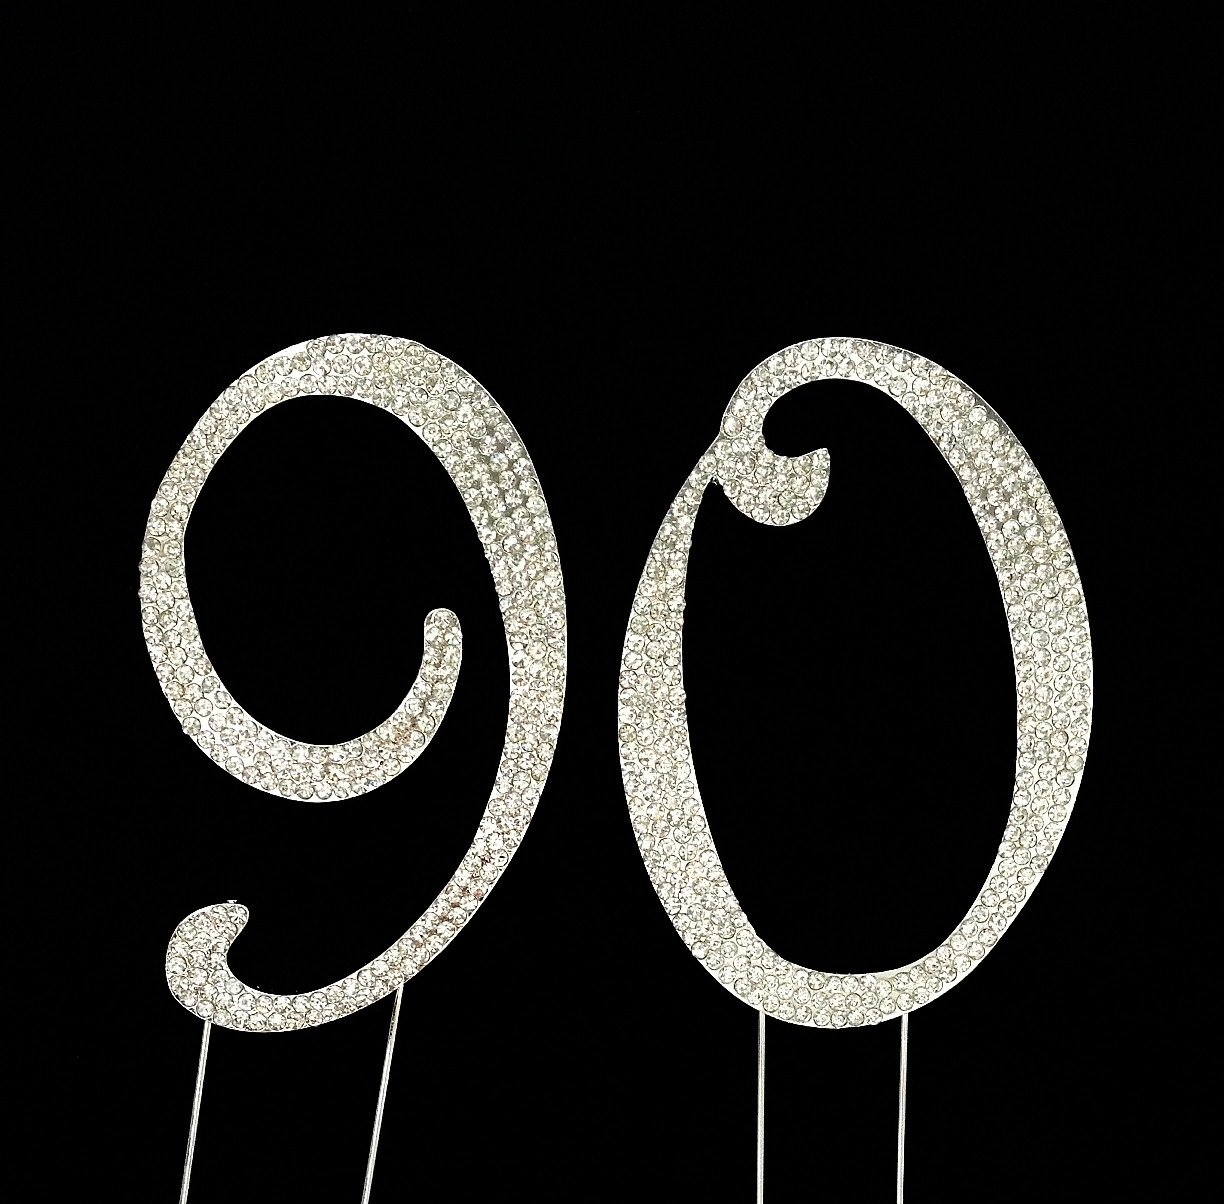 Amazoncom Large 90th Birthday Number Cake Topper with Sparkling